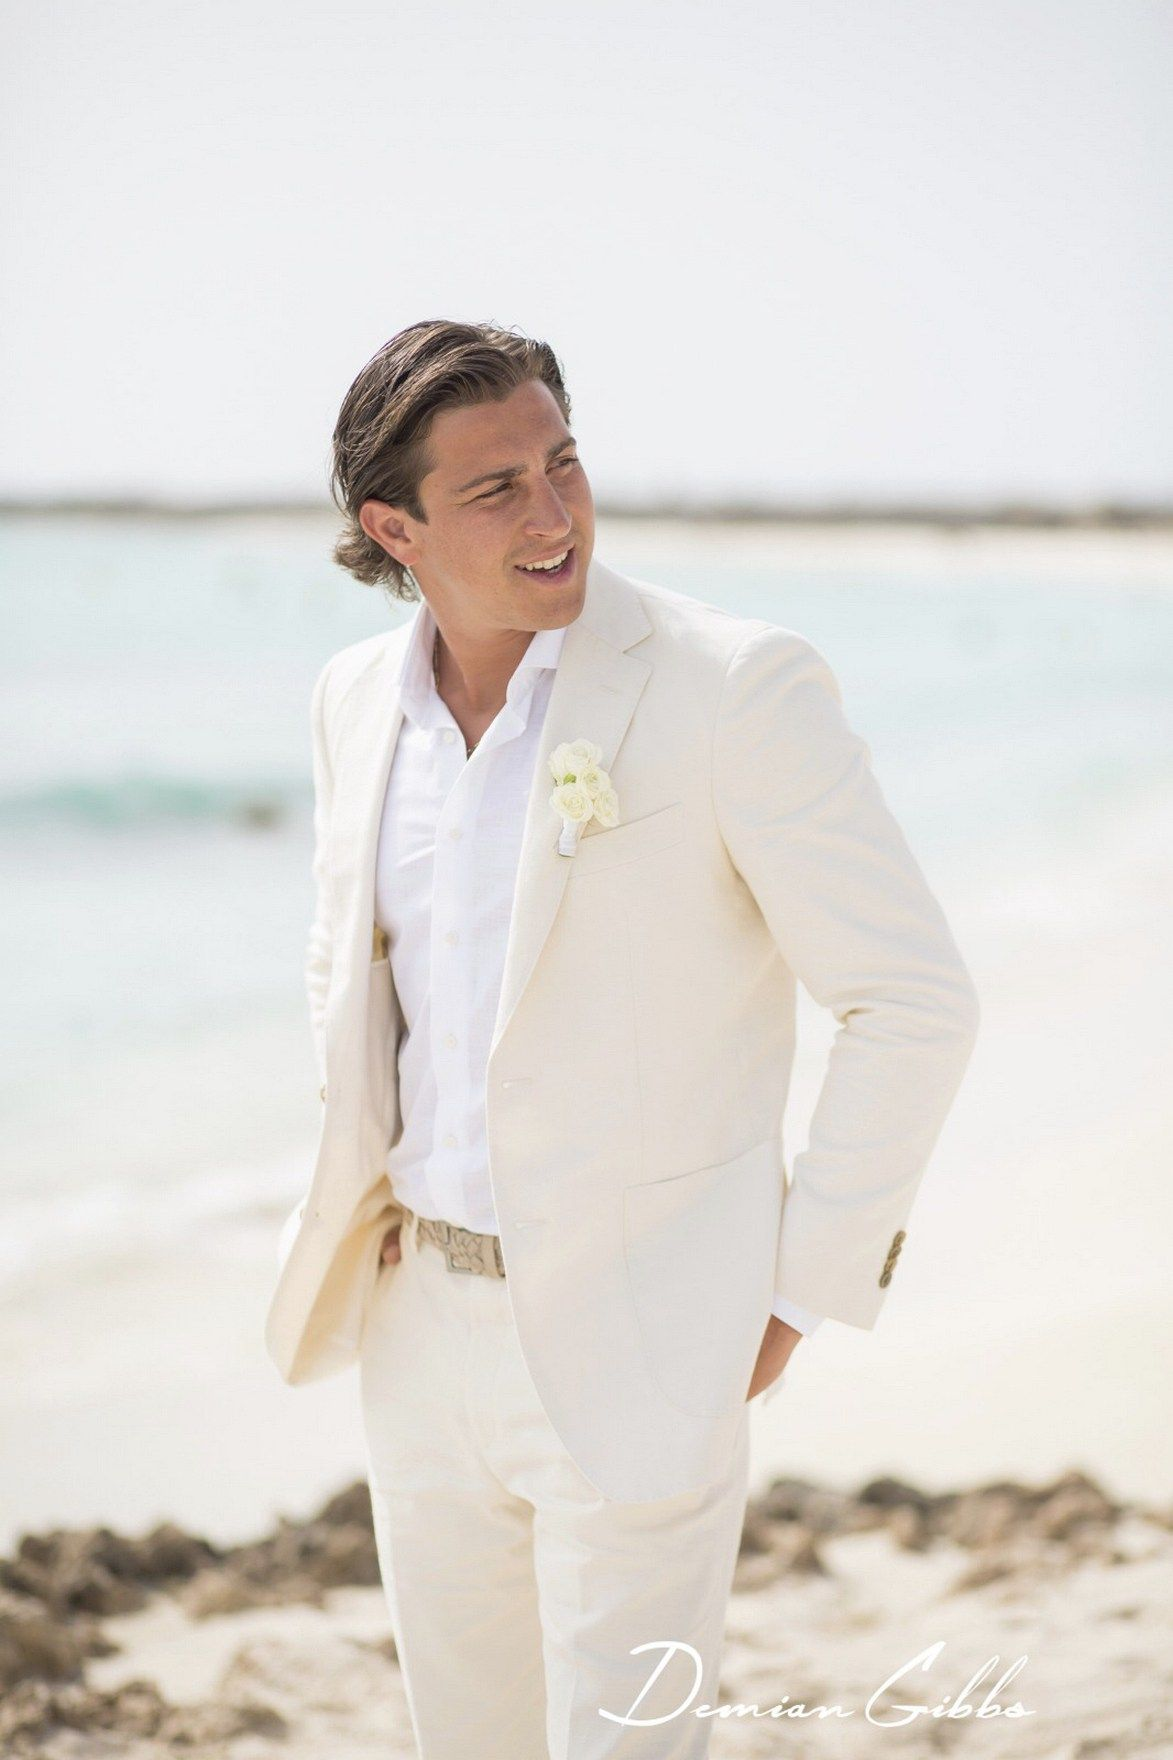 Beach wedding groom attire ideas wedding dress pinterest